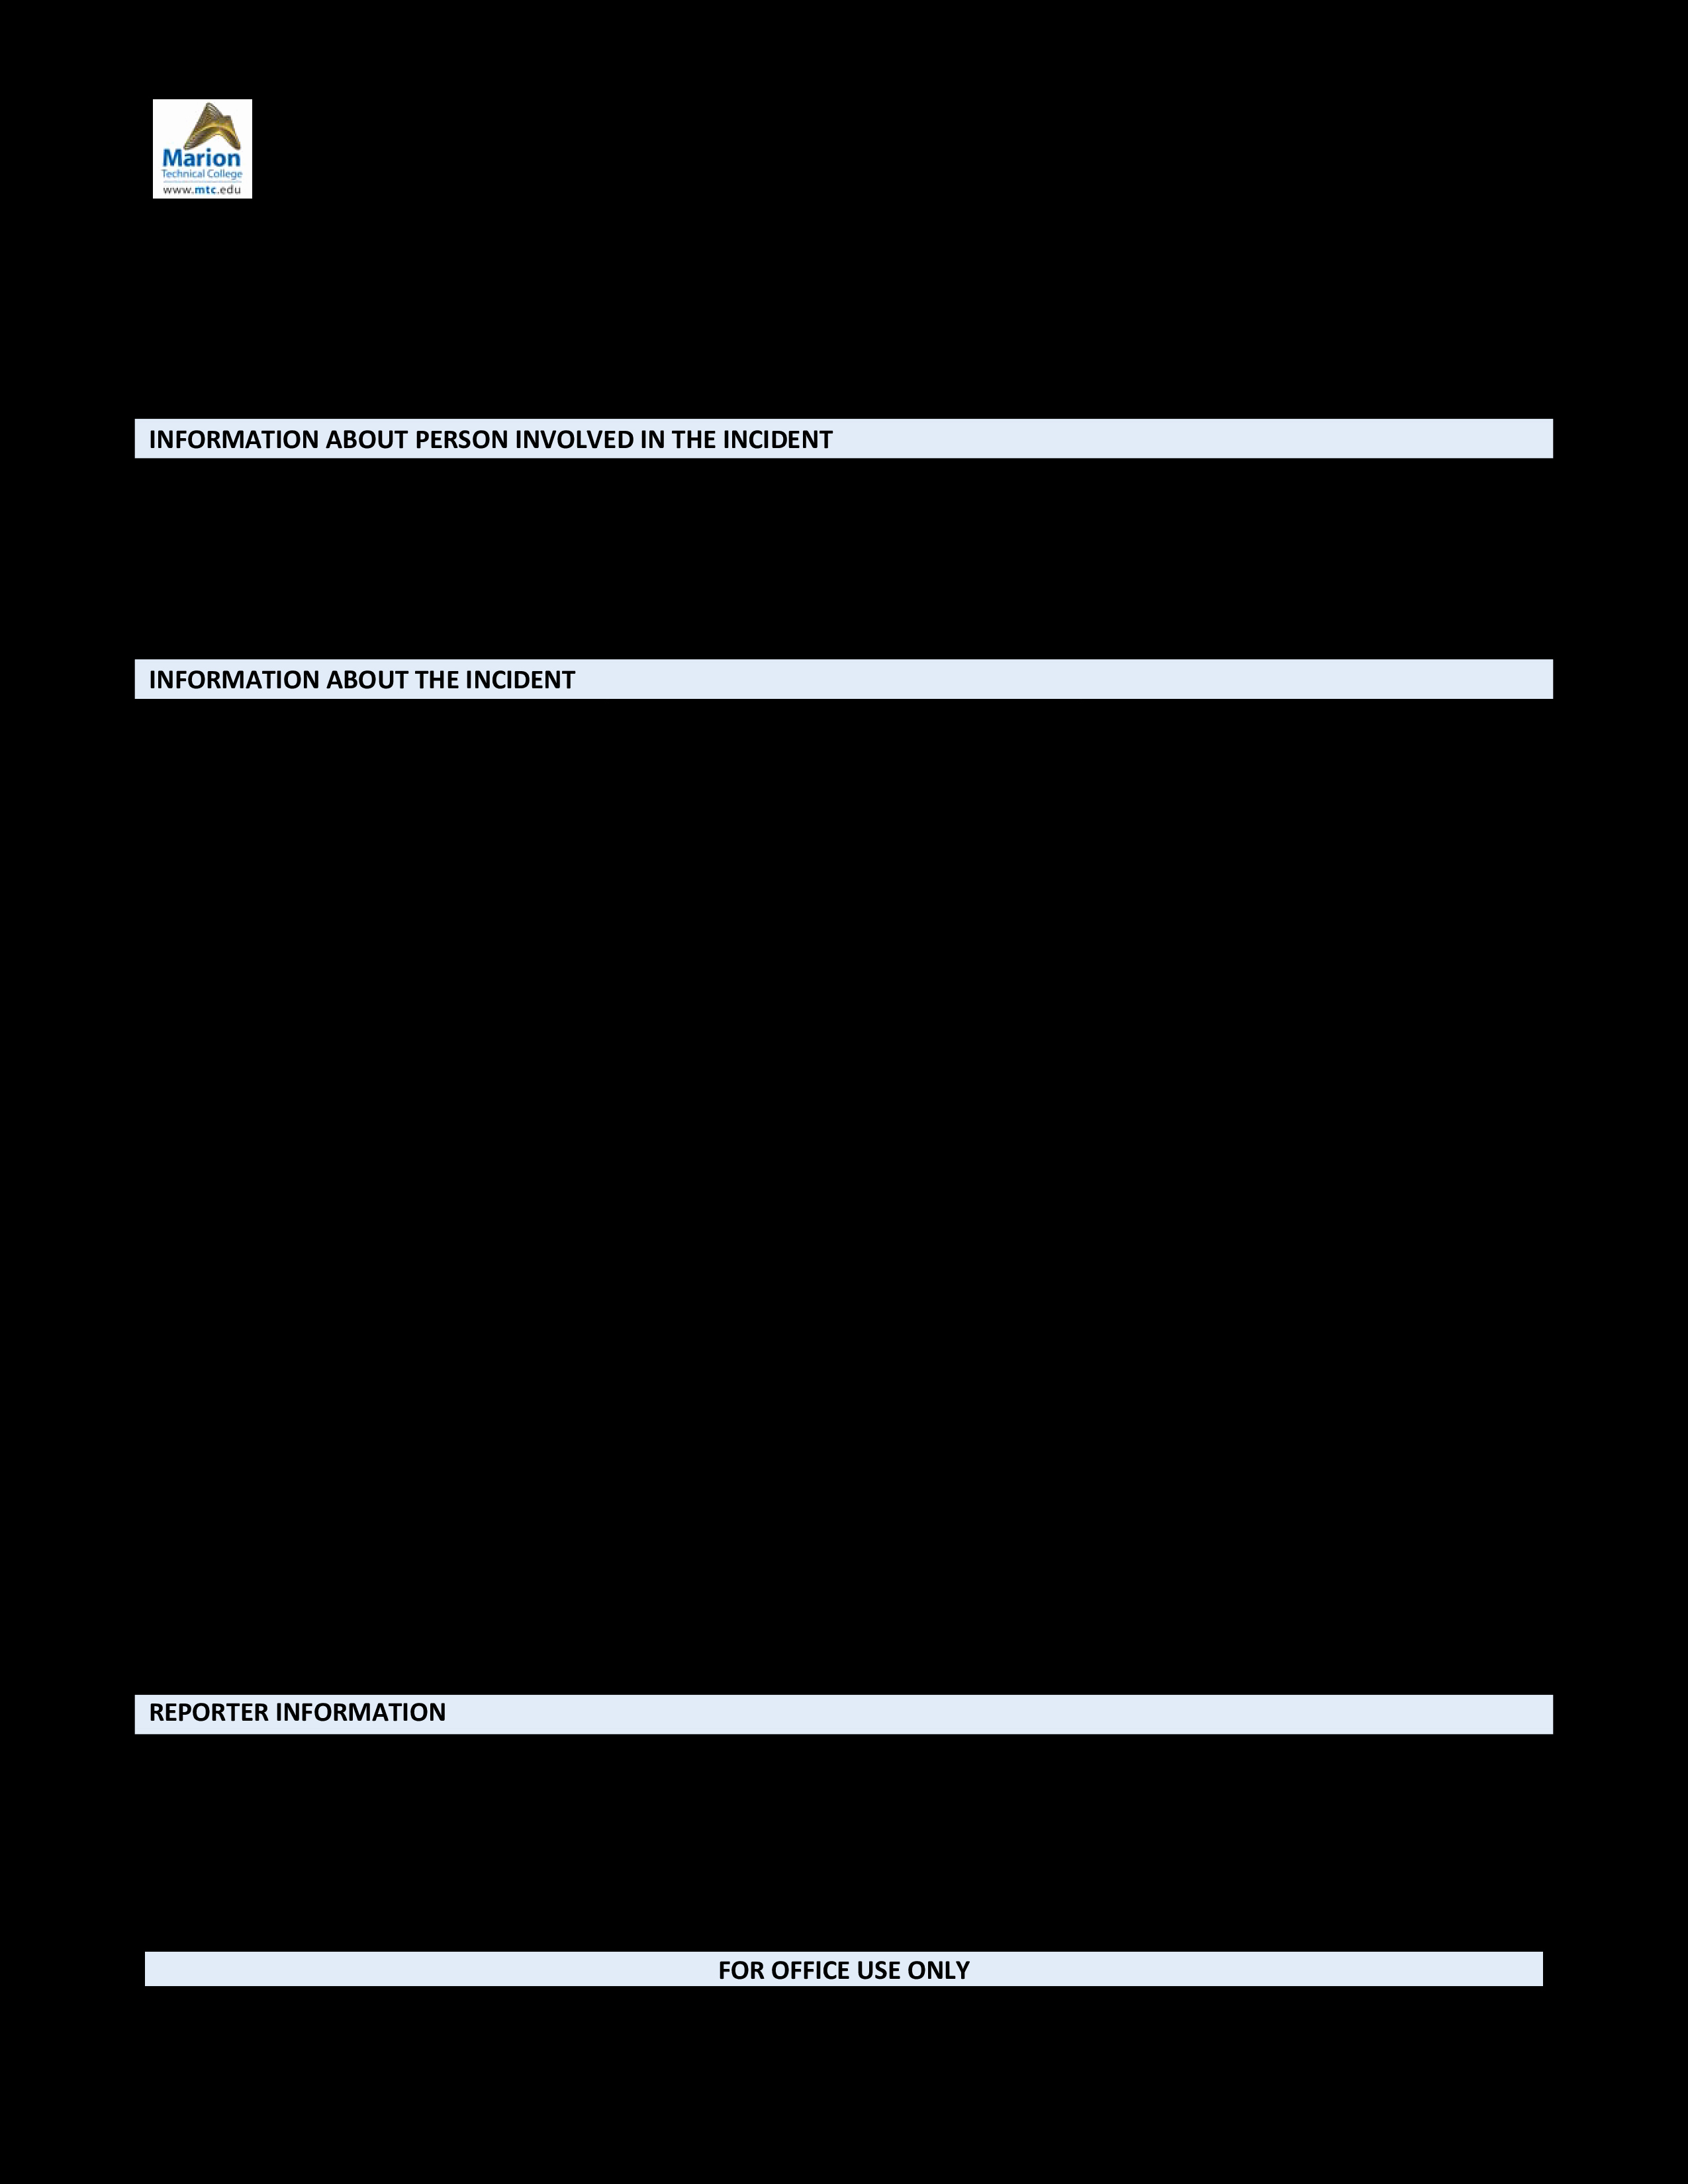 Police Incident Report Template Elegant Free Blank Police Report